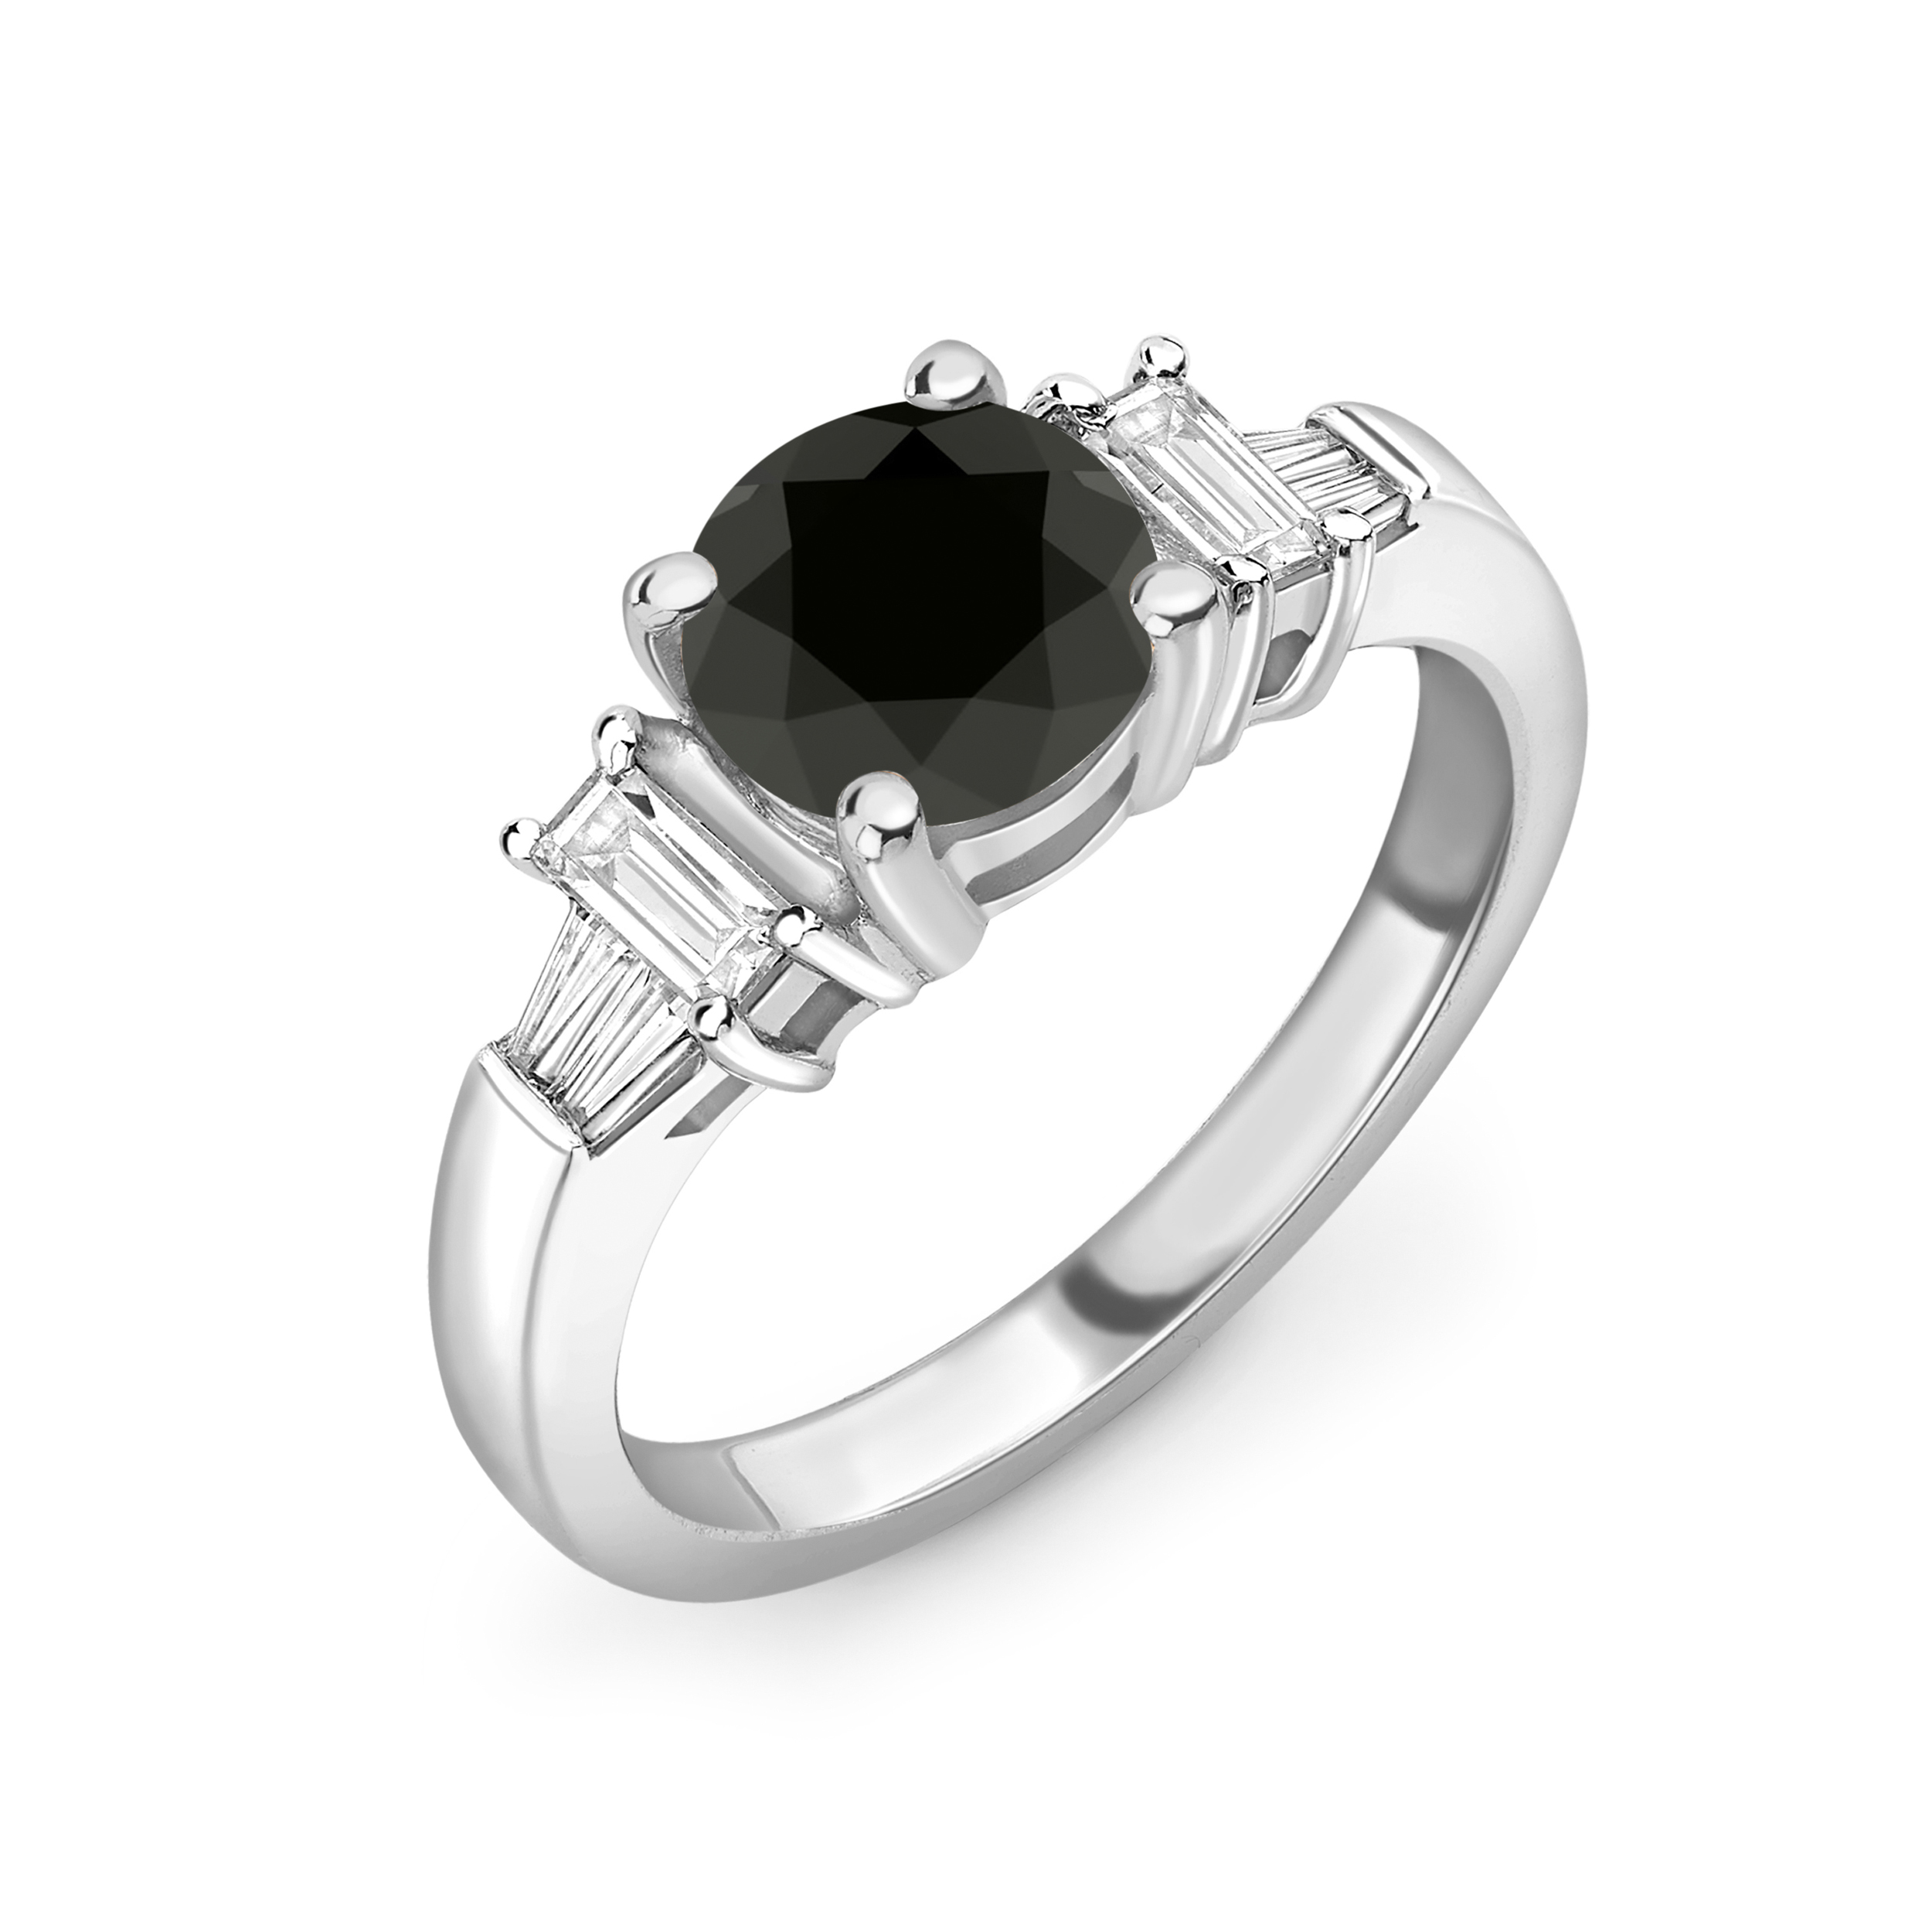 Unique Baguette and Round Diamond Black Diamond Rings for Women